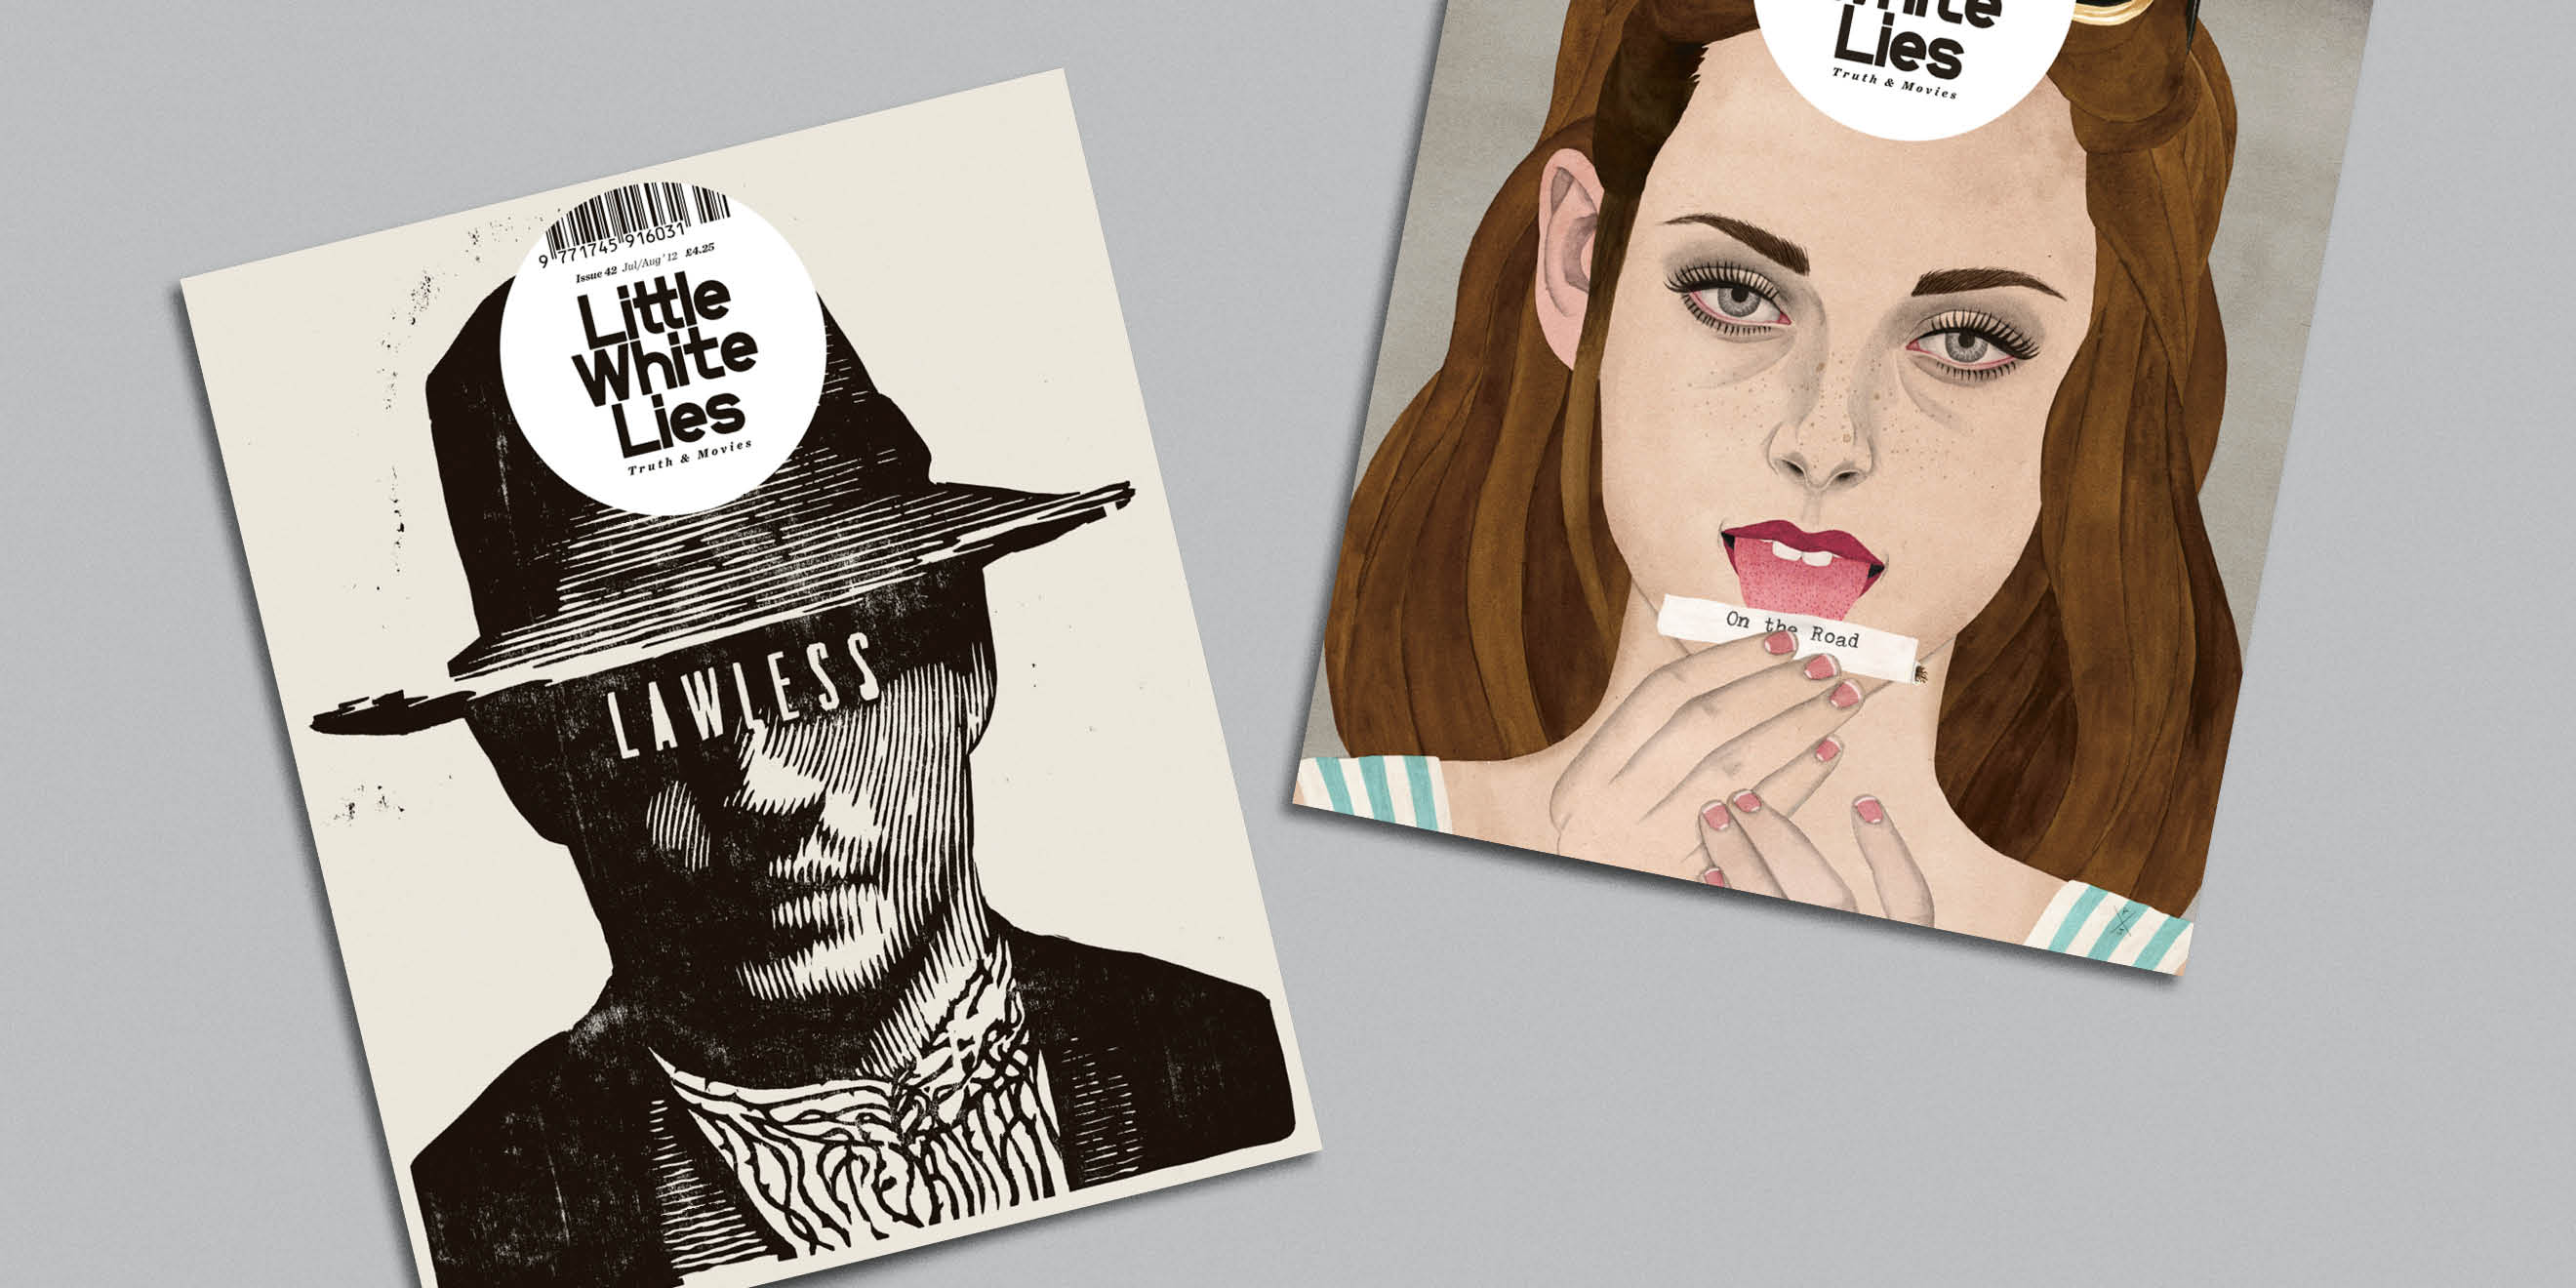 Little White Lies movie magazine illustrated covers - Lawless, On the Road